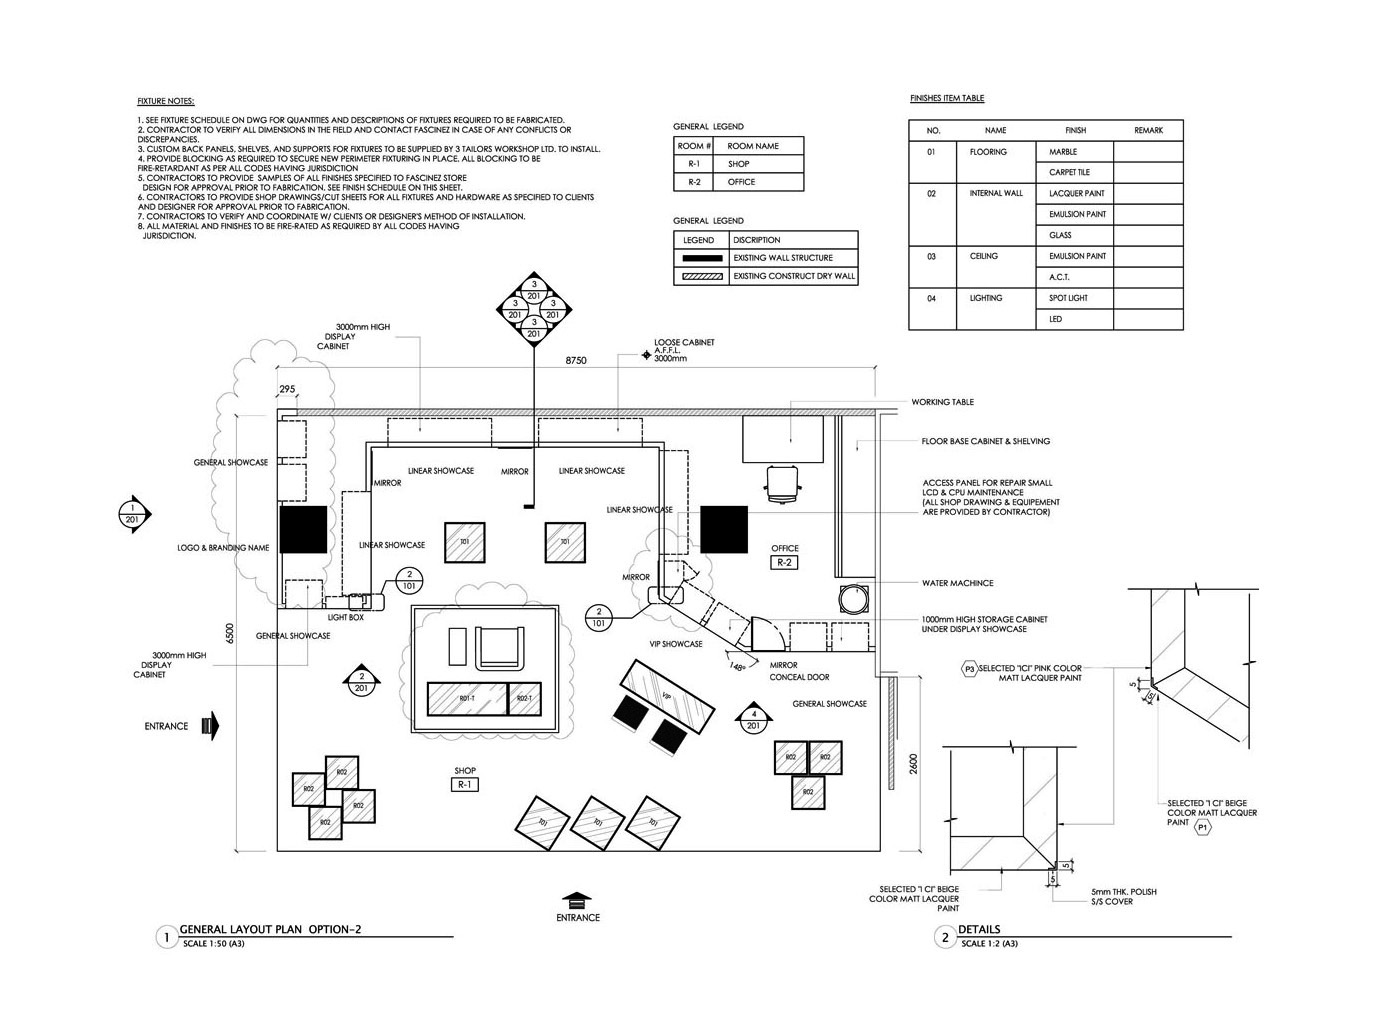 Yrenec interior design construction drawings and millwork for Interior design plan drawings